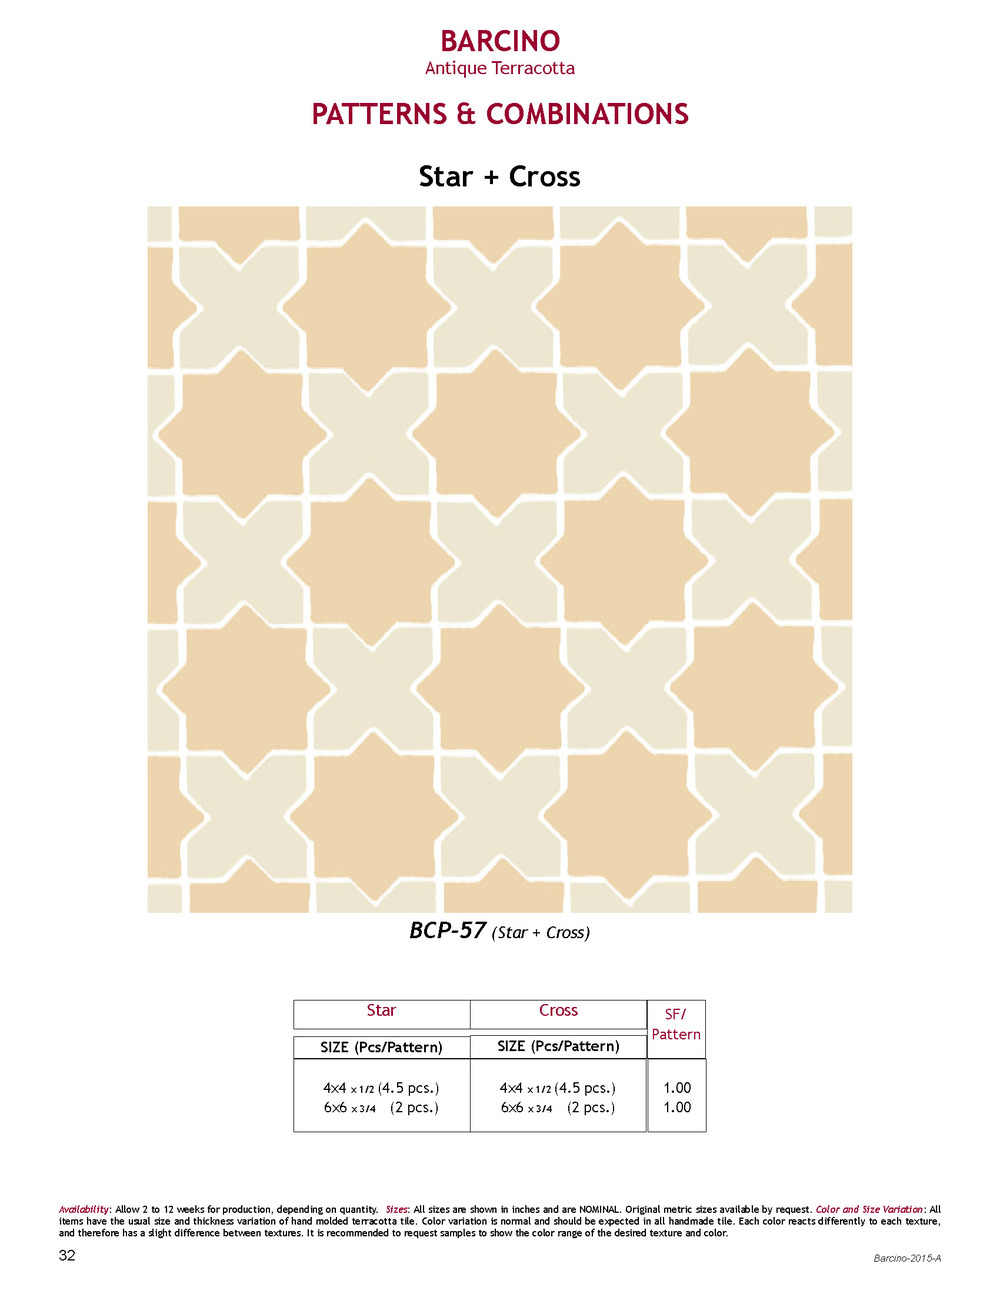 2-Barcino-Patterns&Combinations2015-A_Page_32.jpg